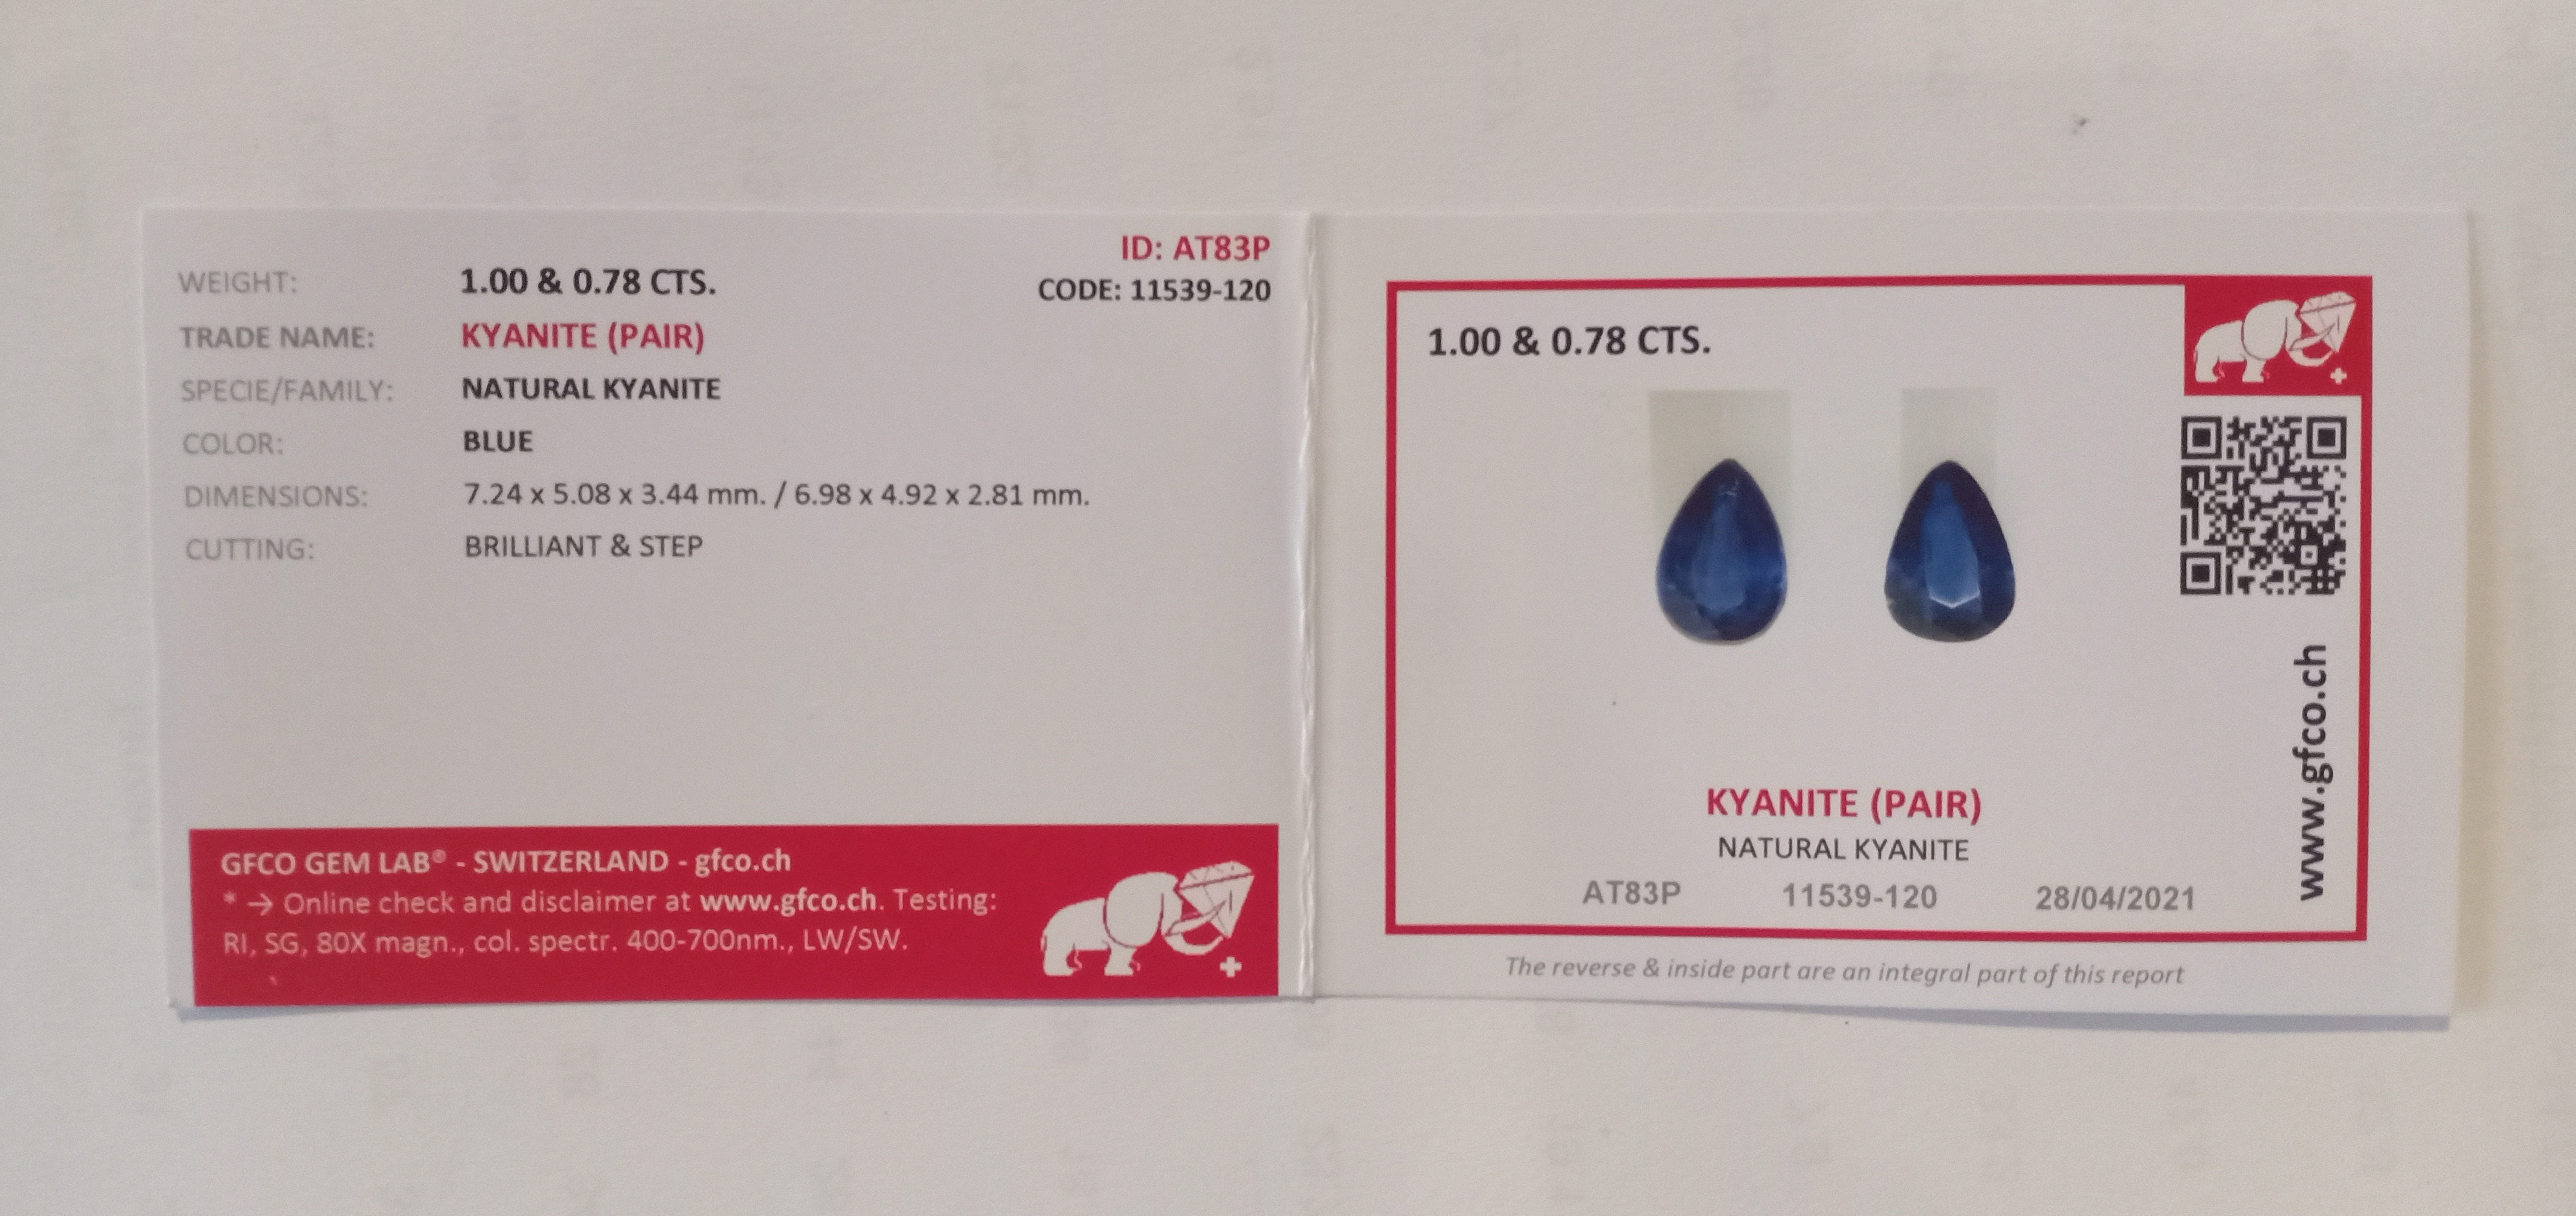 PAIR OF NATURAL KYANITES - NEPAL - 1.78 Cts - Certificate GFCO Swiss Laboratory - Image 2 of 2